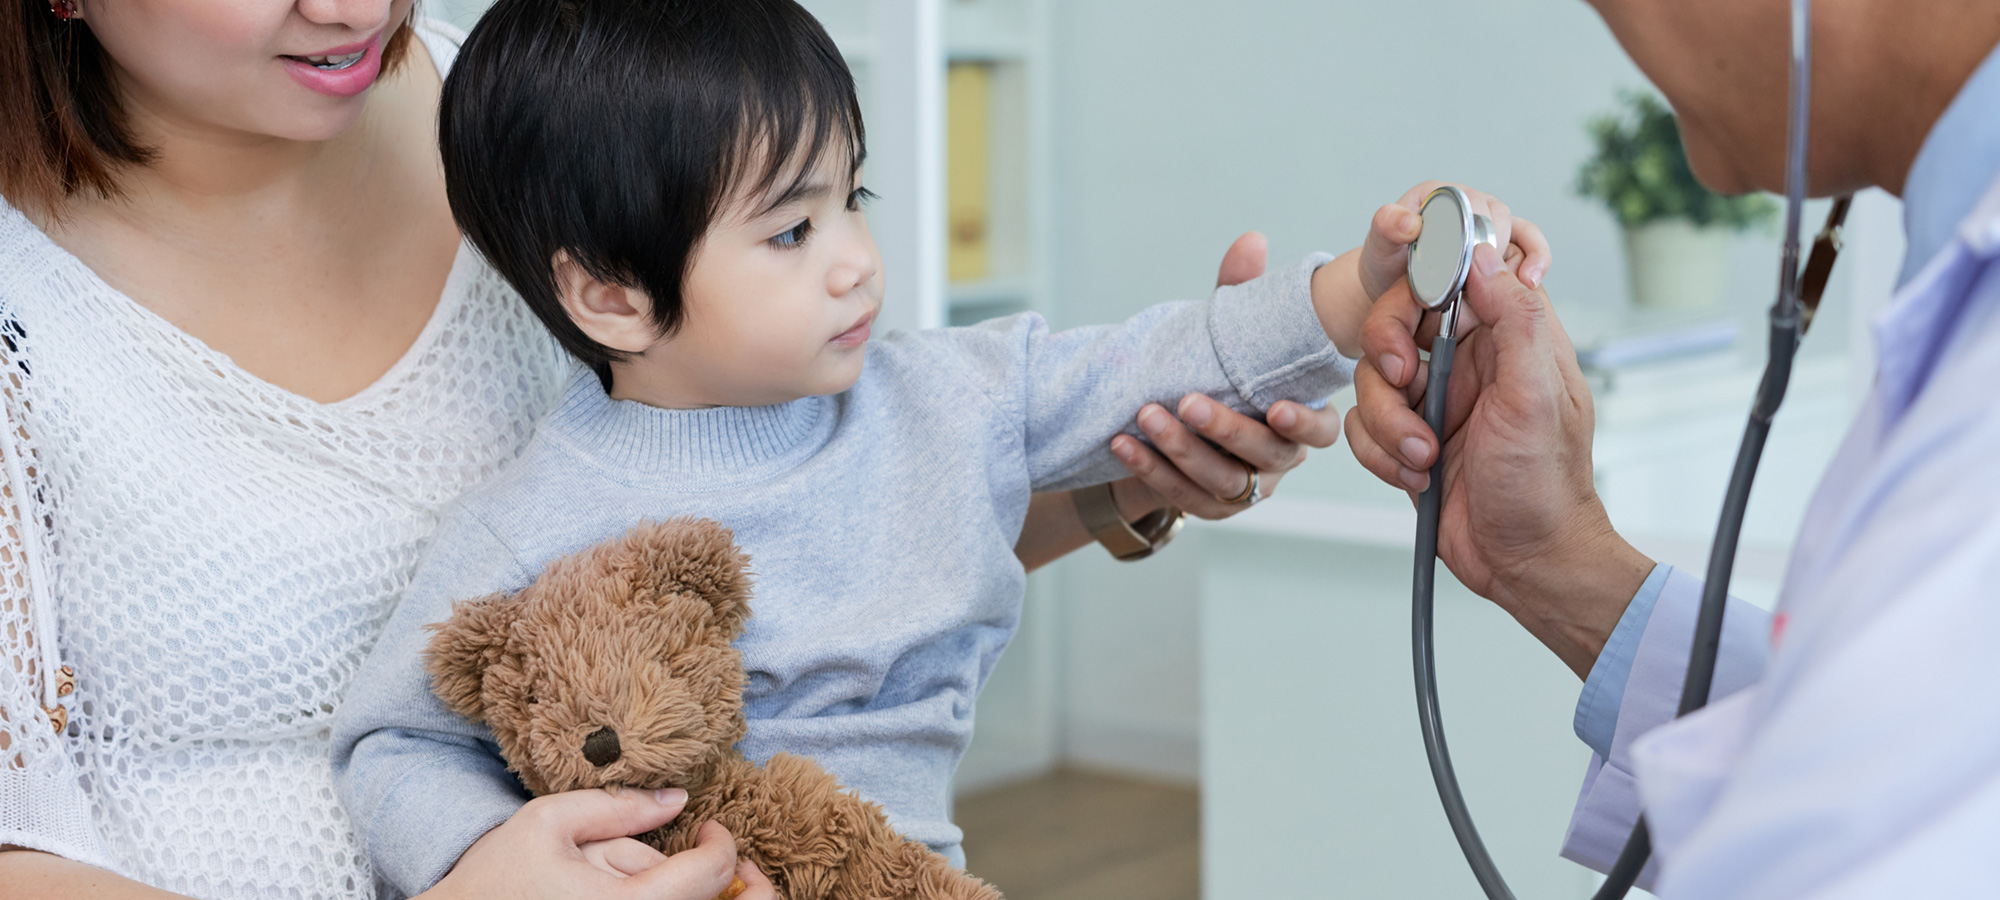 infant inspecting doctors stethoscope